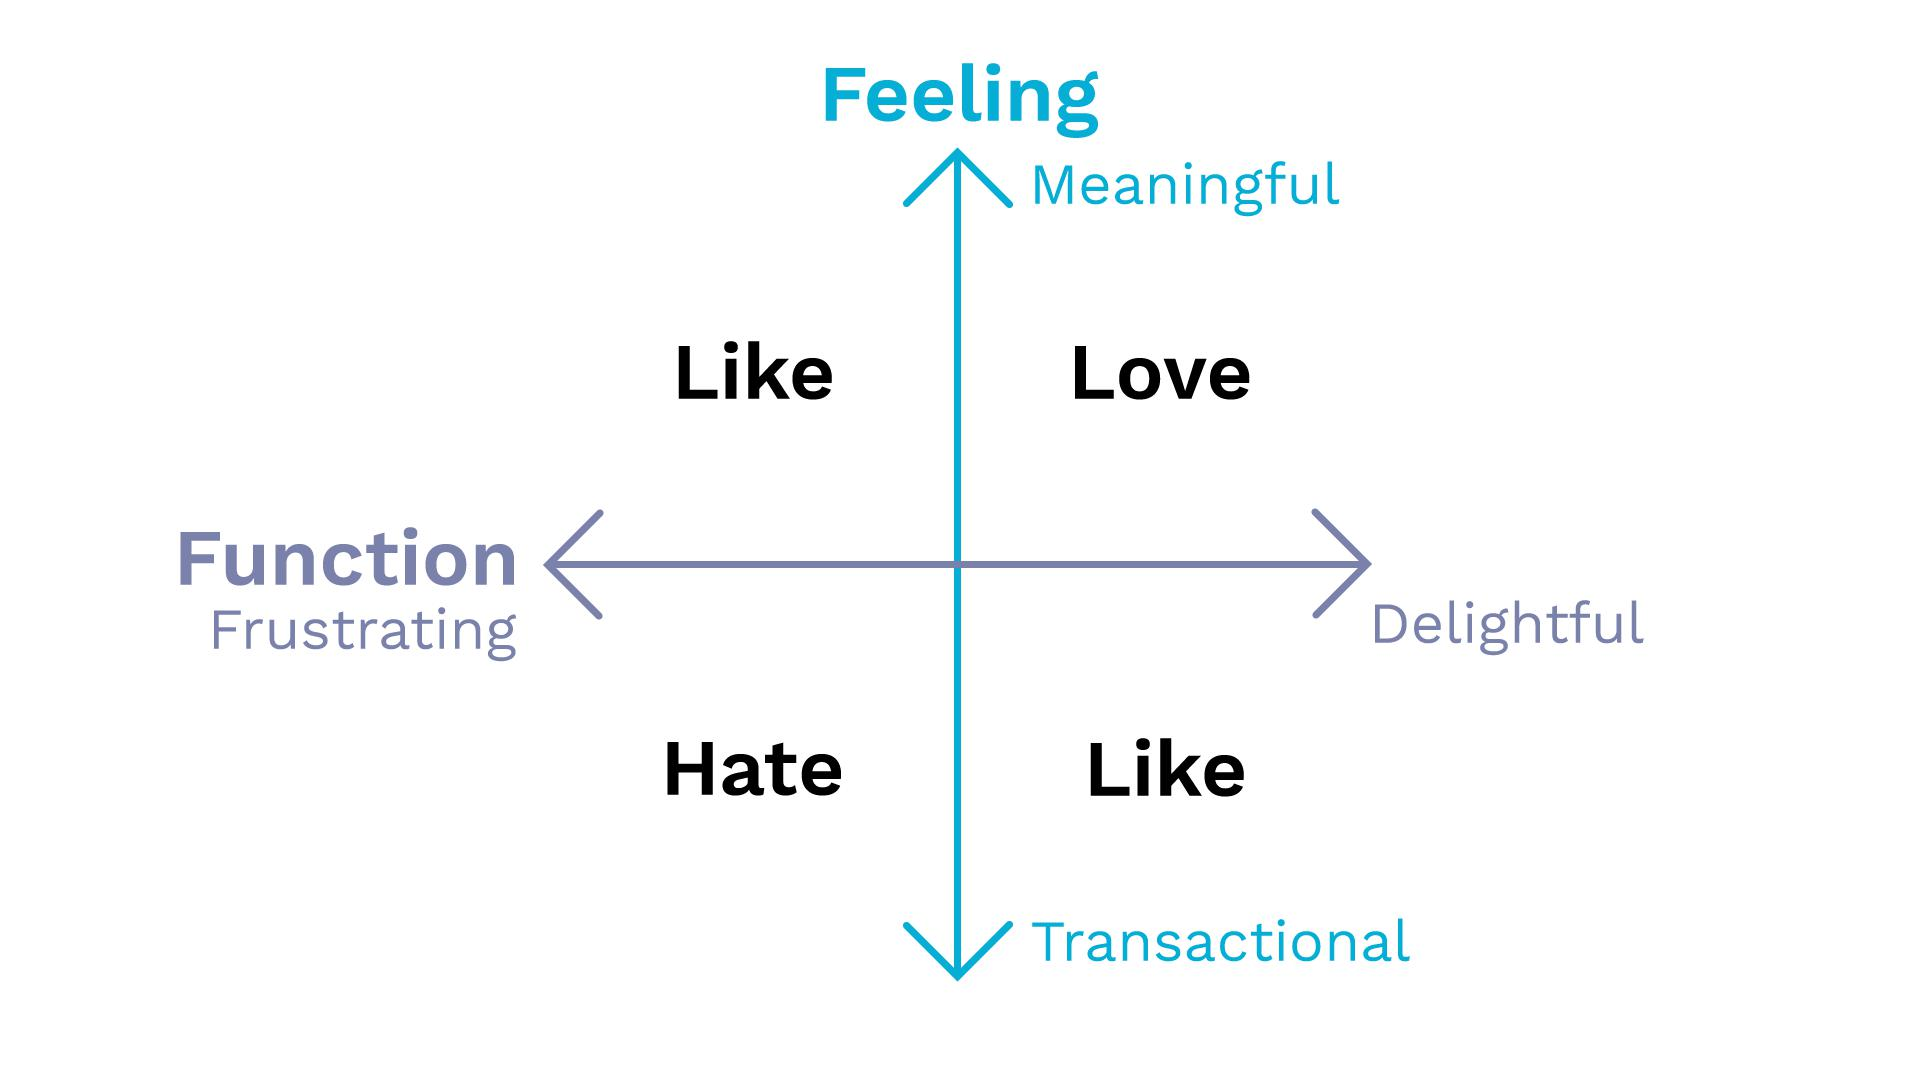 Chart showing how the combination of Feeling and Function creates either a Hate, Like or Love connection with users.